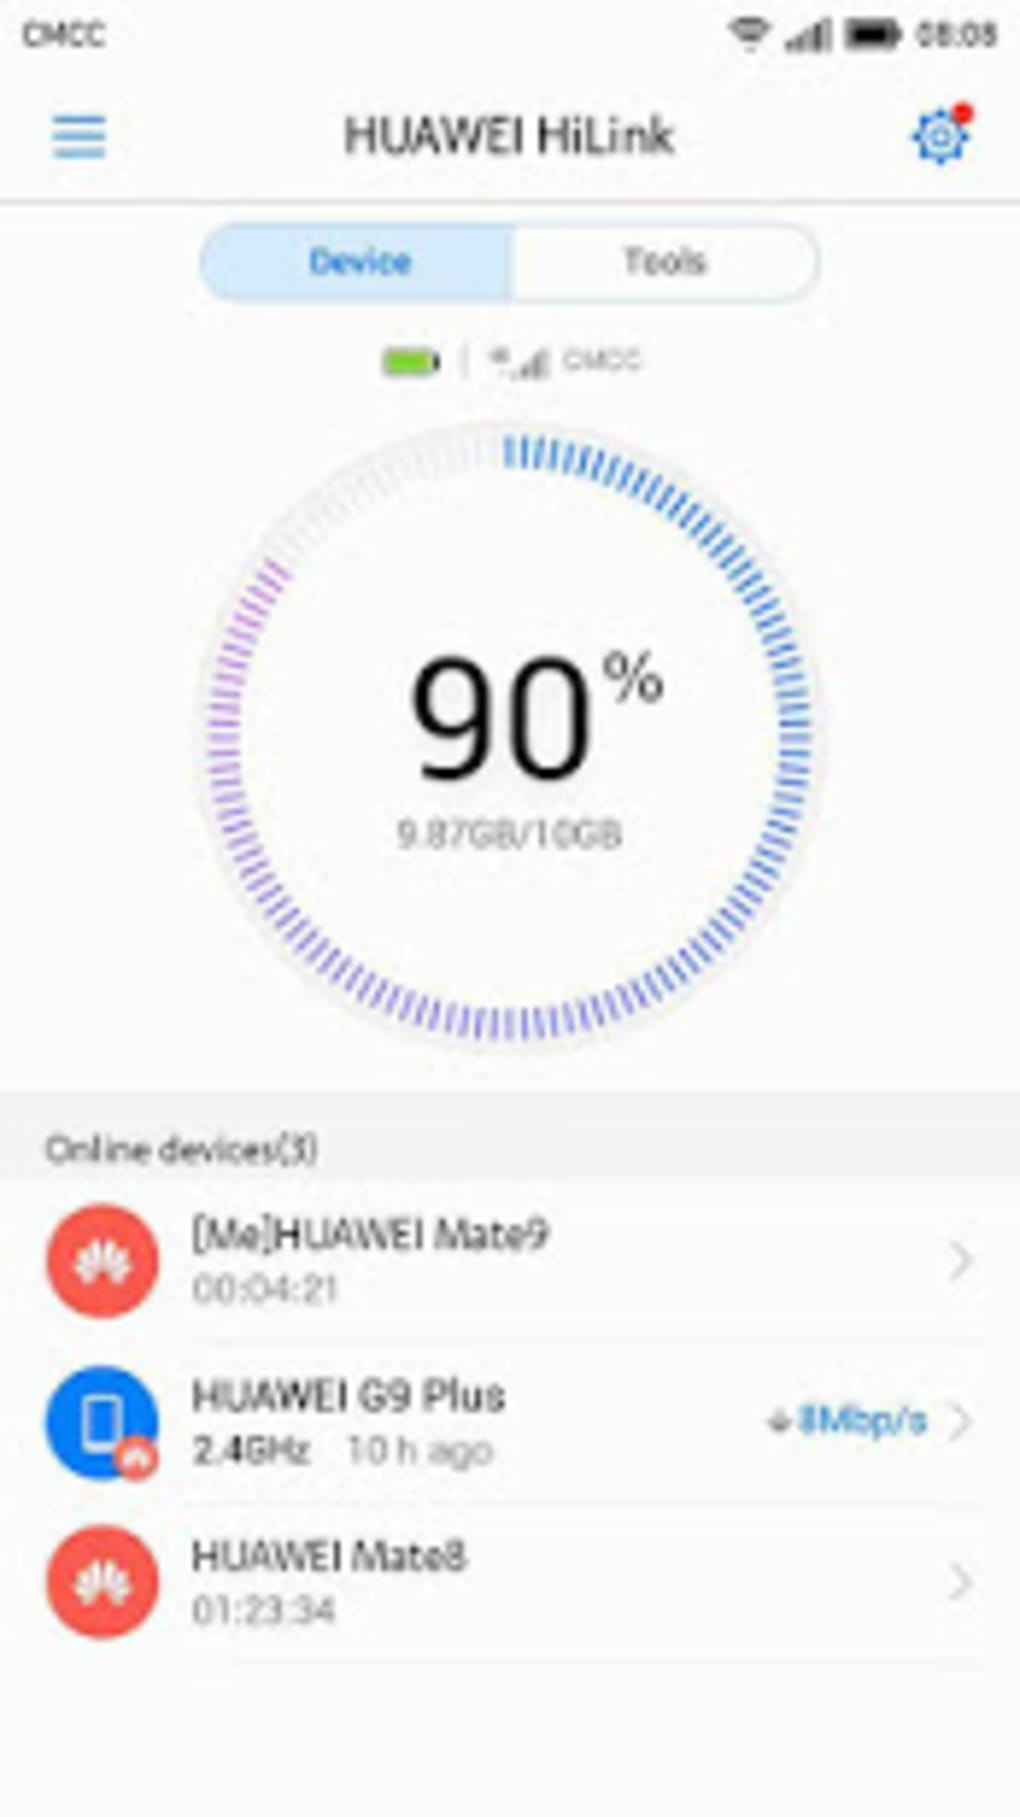 Huawei HiLink Mobile WiFi APK for Android - Download